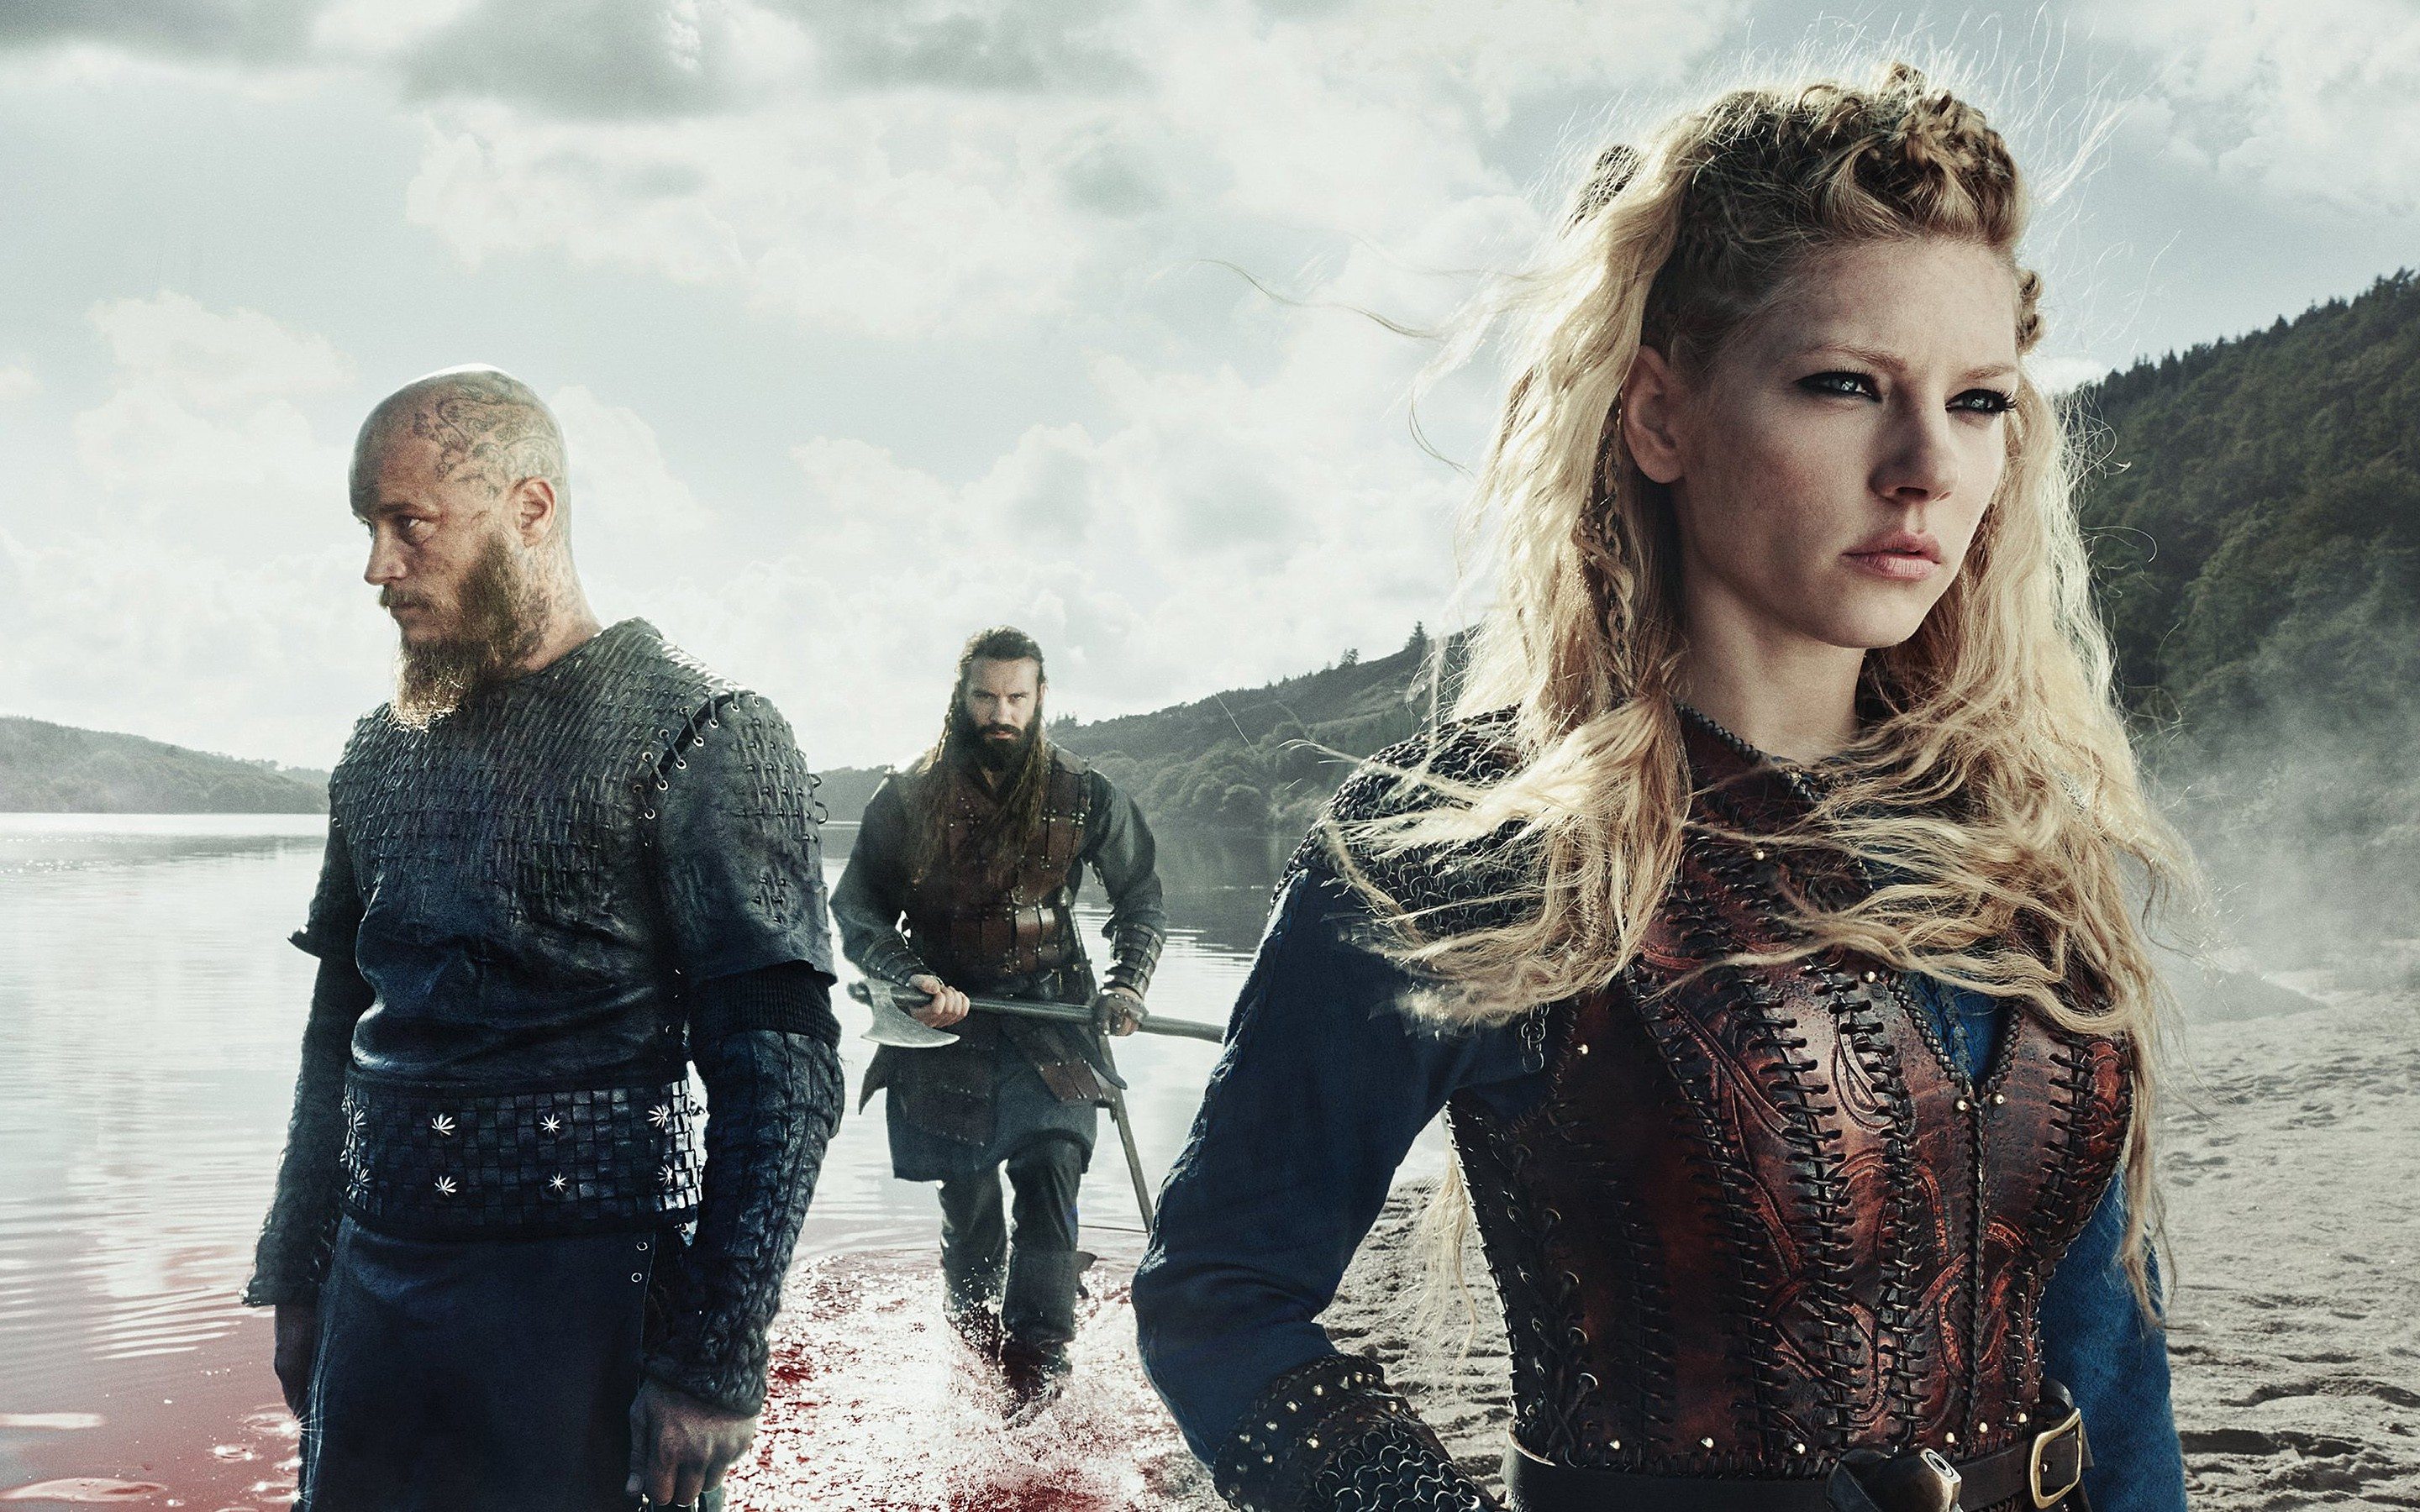 Vikings season 4 hd tv shows 4k wallpapers images - Tv series wallpaper 4k ...